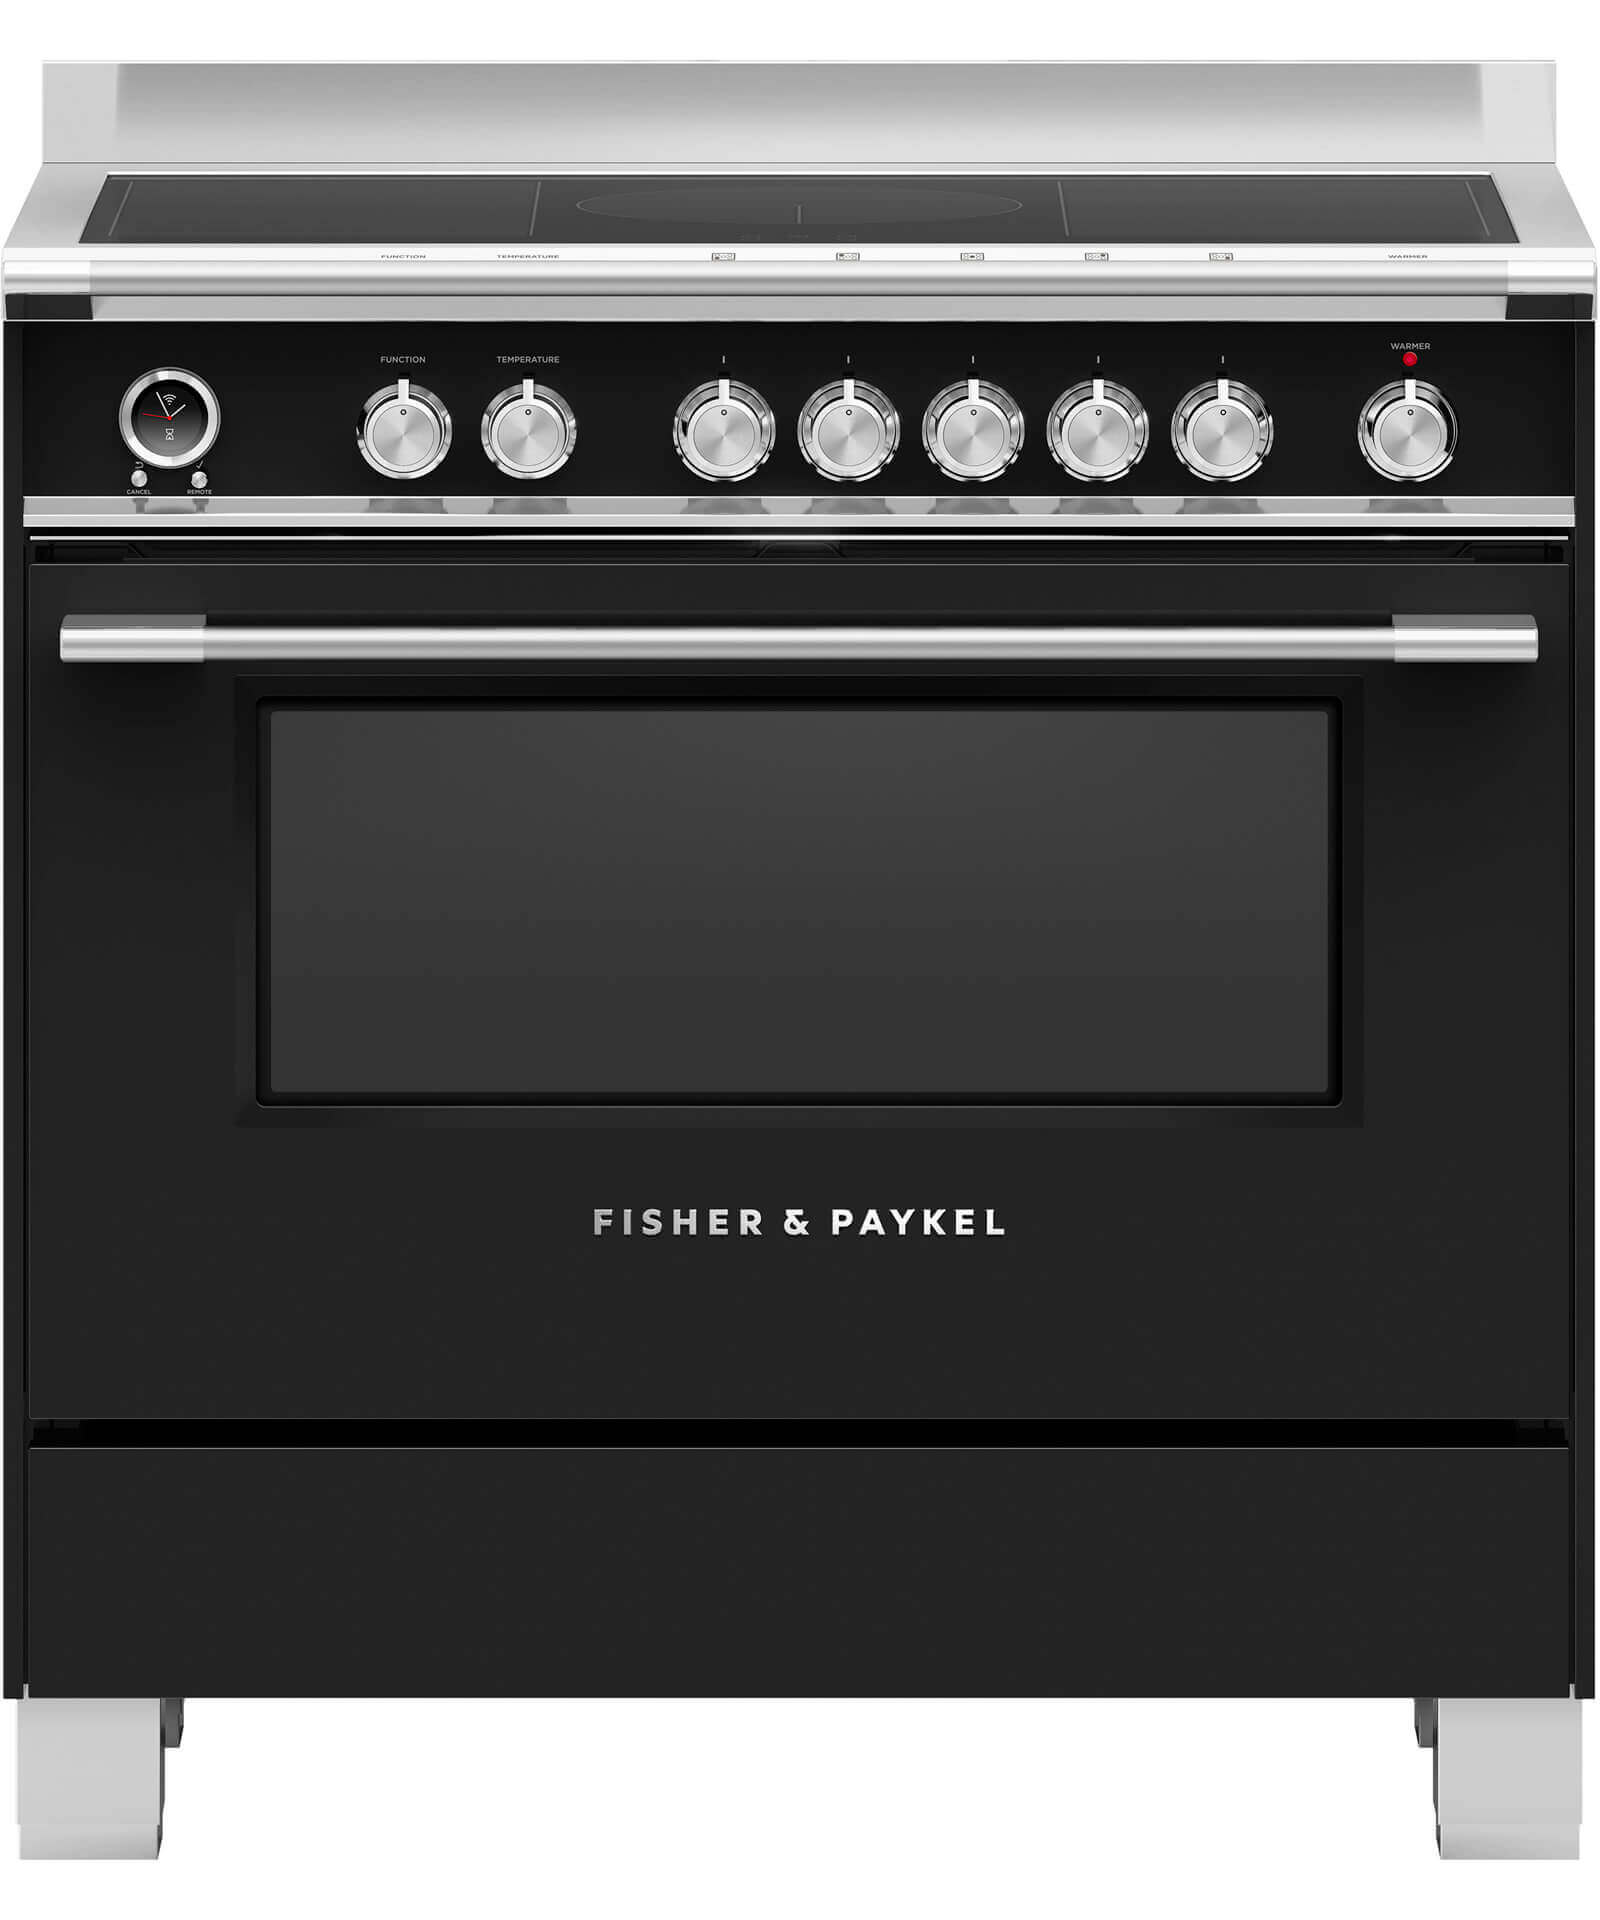 Classic Cuisine Induction Cooker Instructions Or90sci6b1 Freestanding Induction Cooker 90cm Fisher